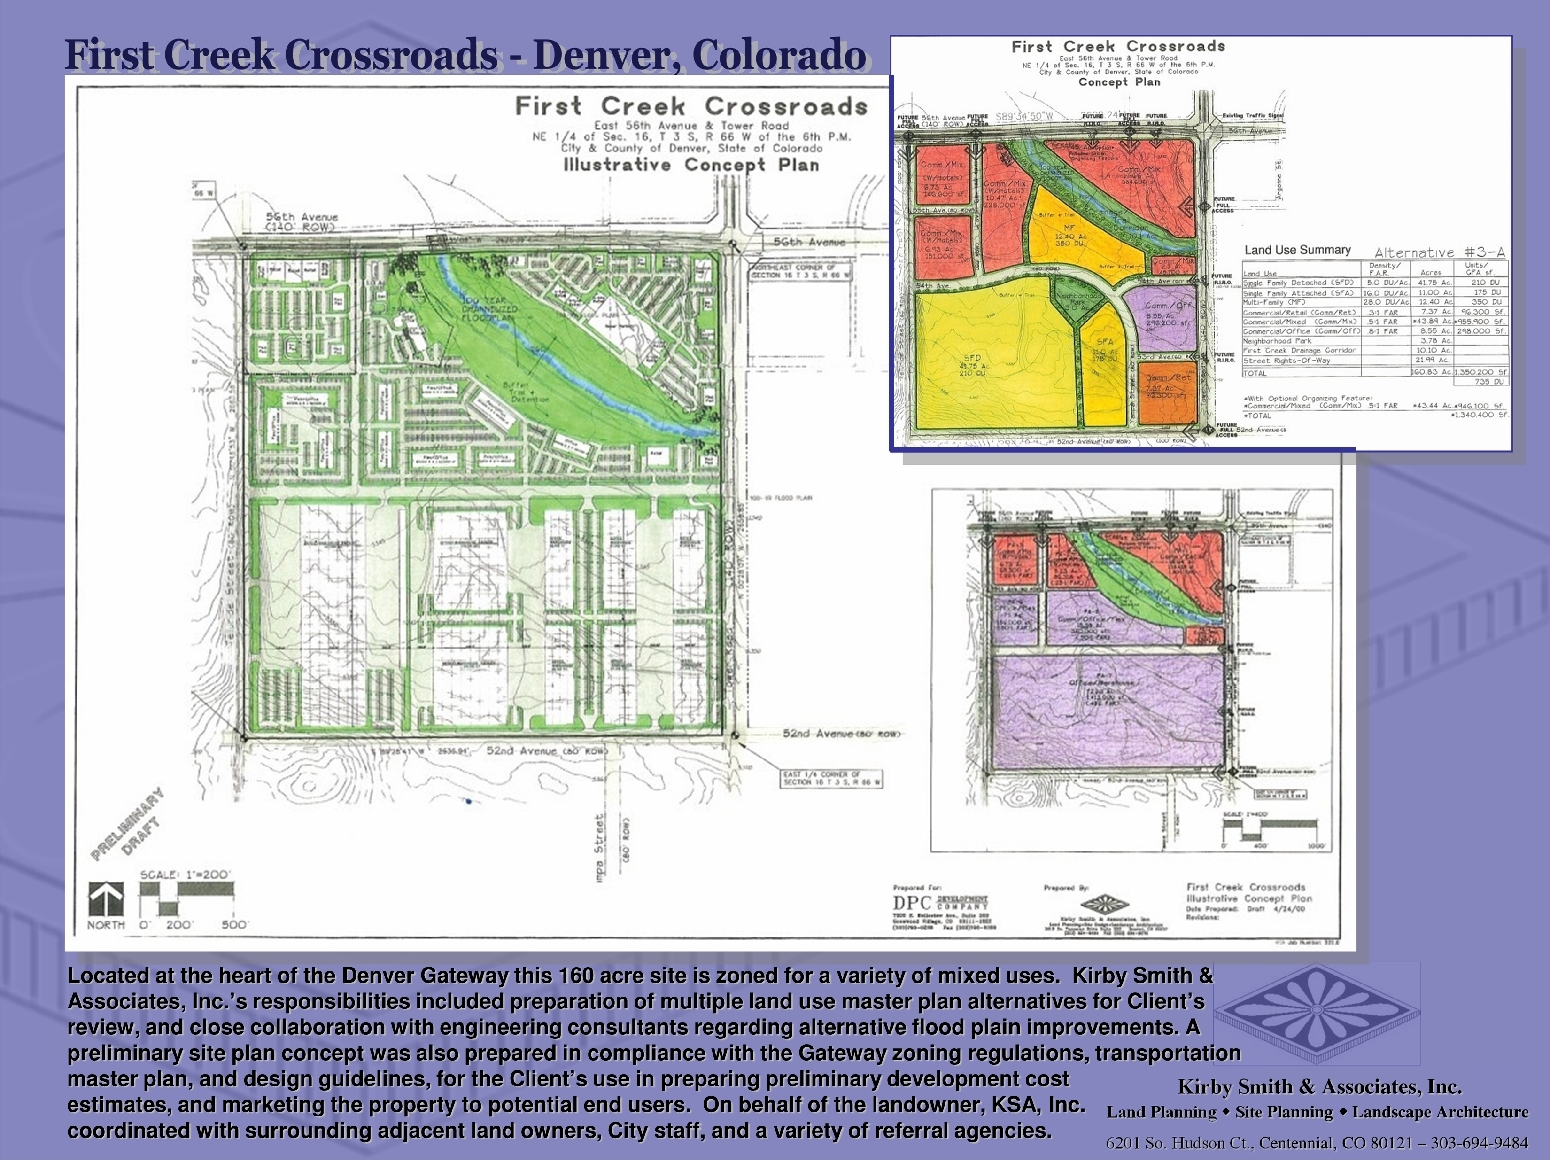 KSA, Inc's responsibilities for this 160 acre mixed use site included preparation of multiple land use master plan alternatives, and collaboration with engineering consultants regarding alternative flood plain improvements. A preliminary site plan concept was also prepared in compliance with the Gateway zoning regulations, and design guidelines, for the Client's use in preparing development cost estimates, and marketing the site to potential end users.